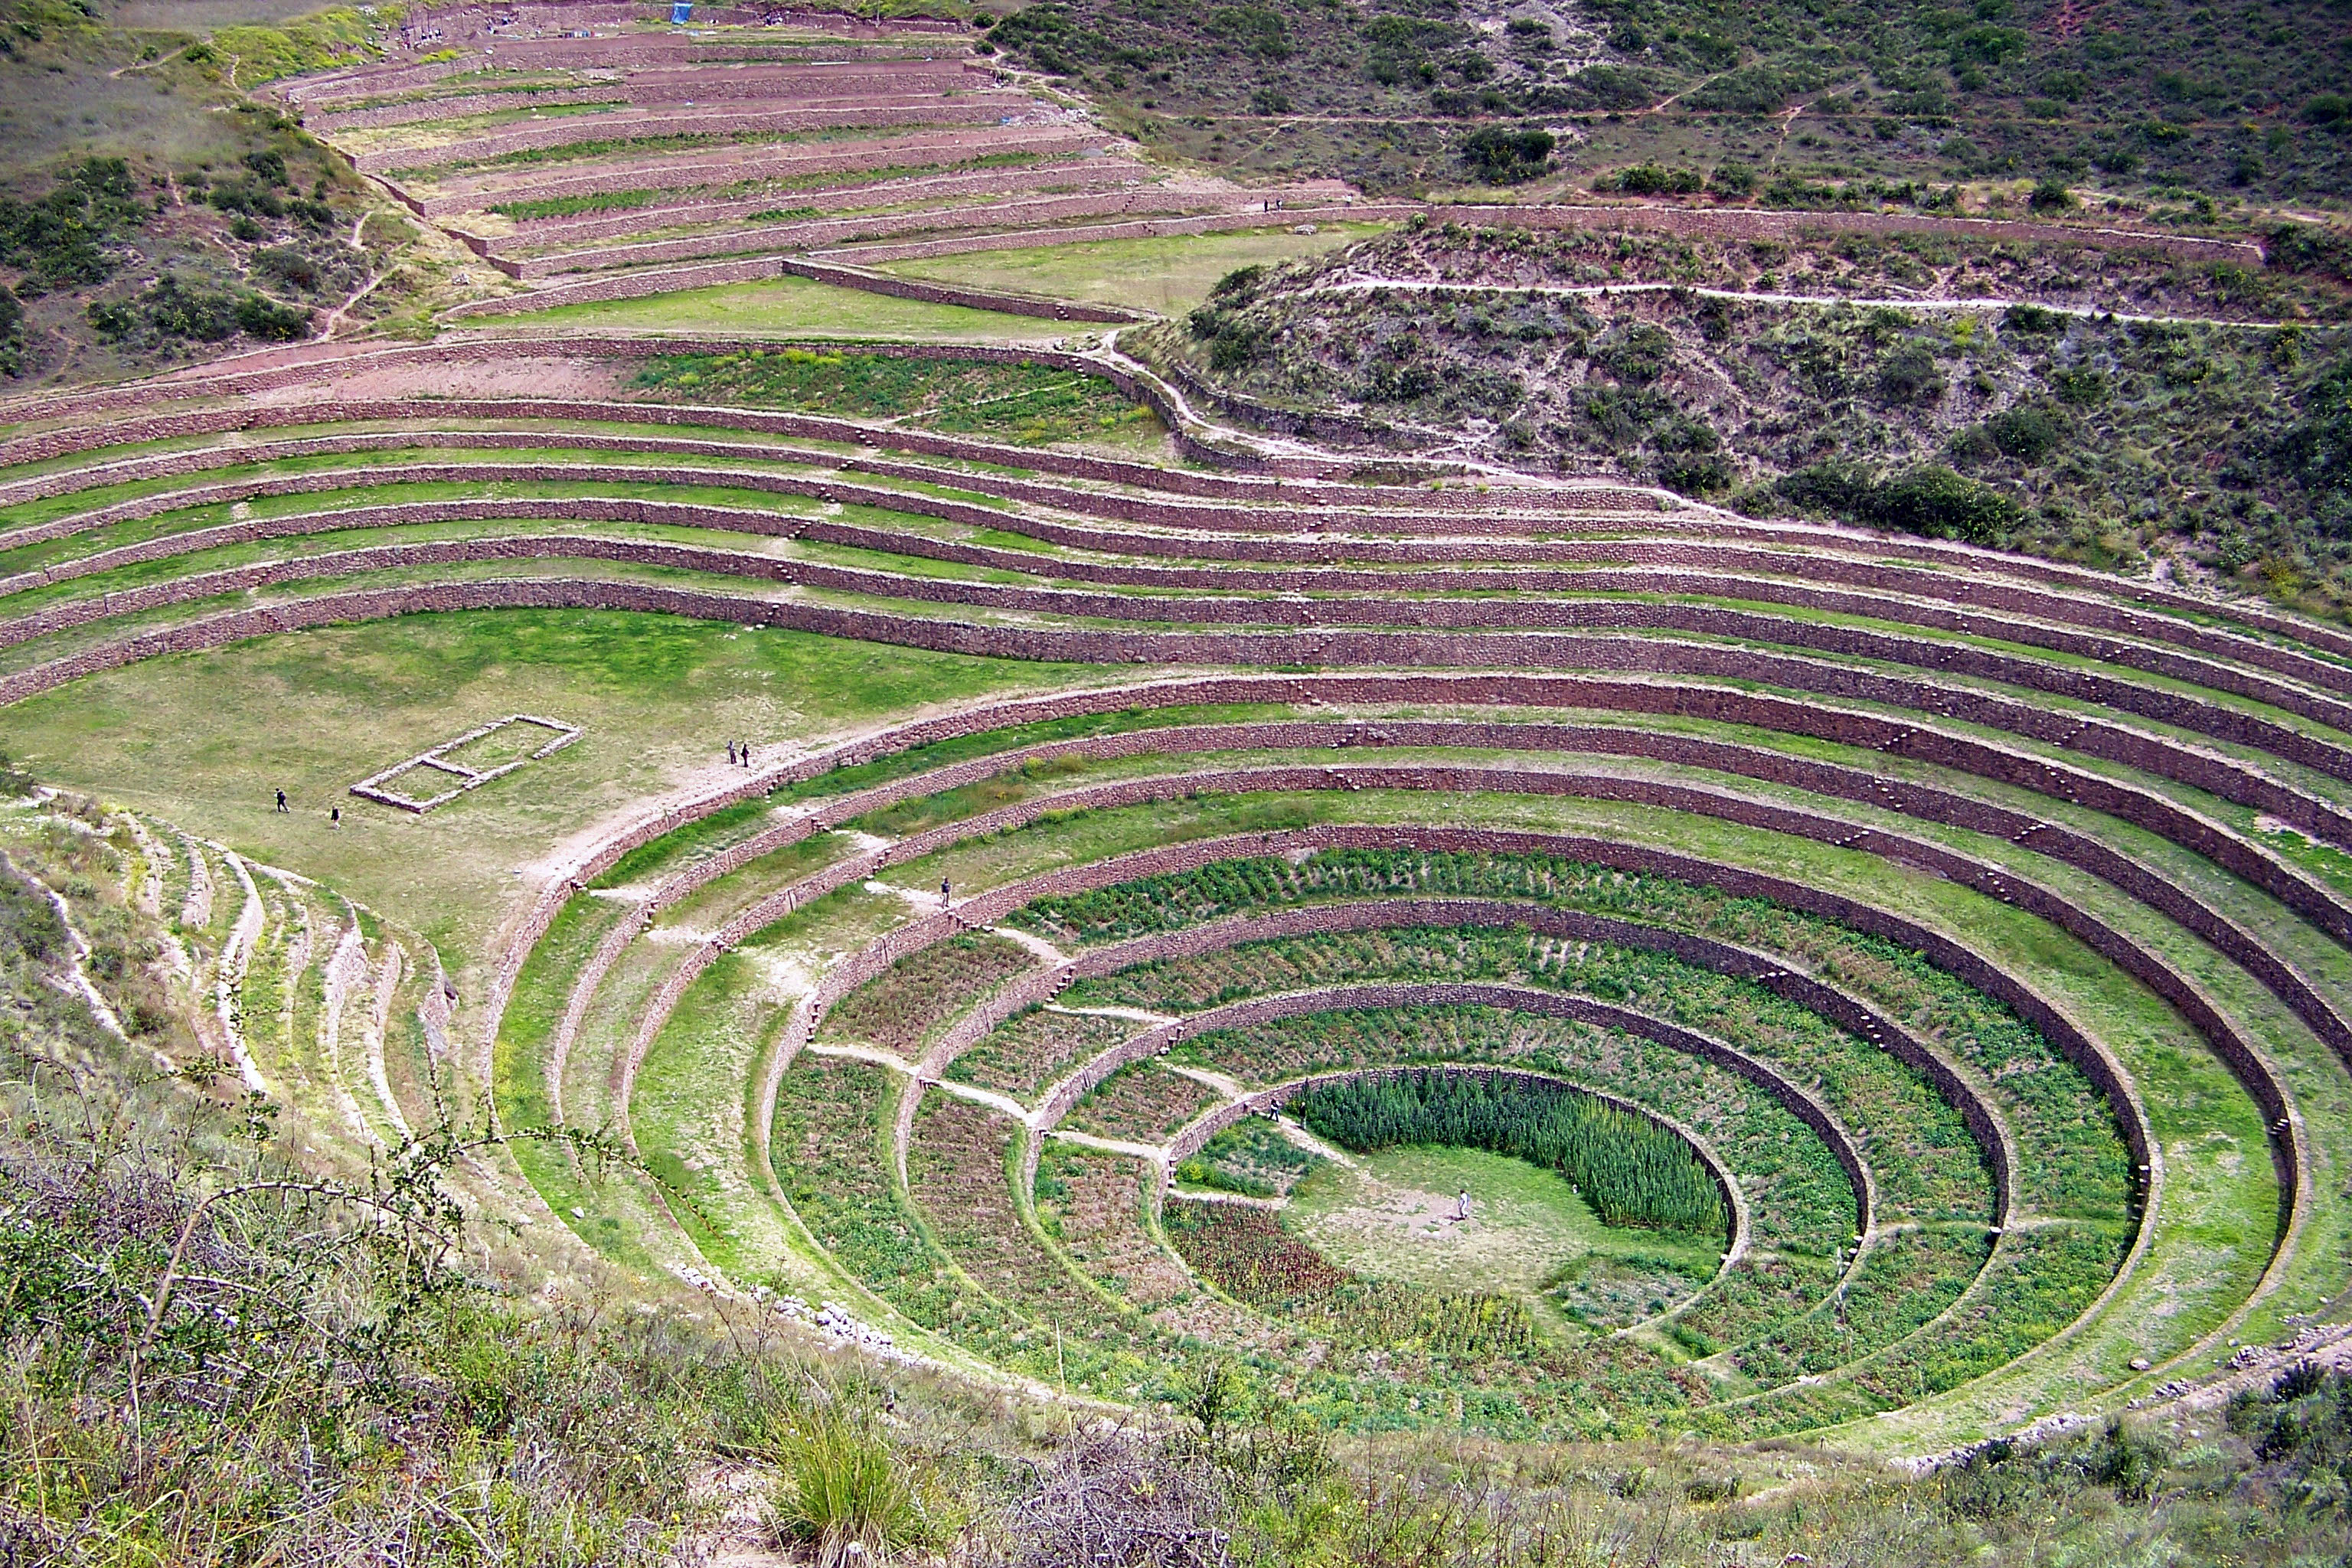 Inca agricultural lab at Moray